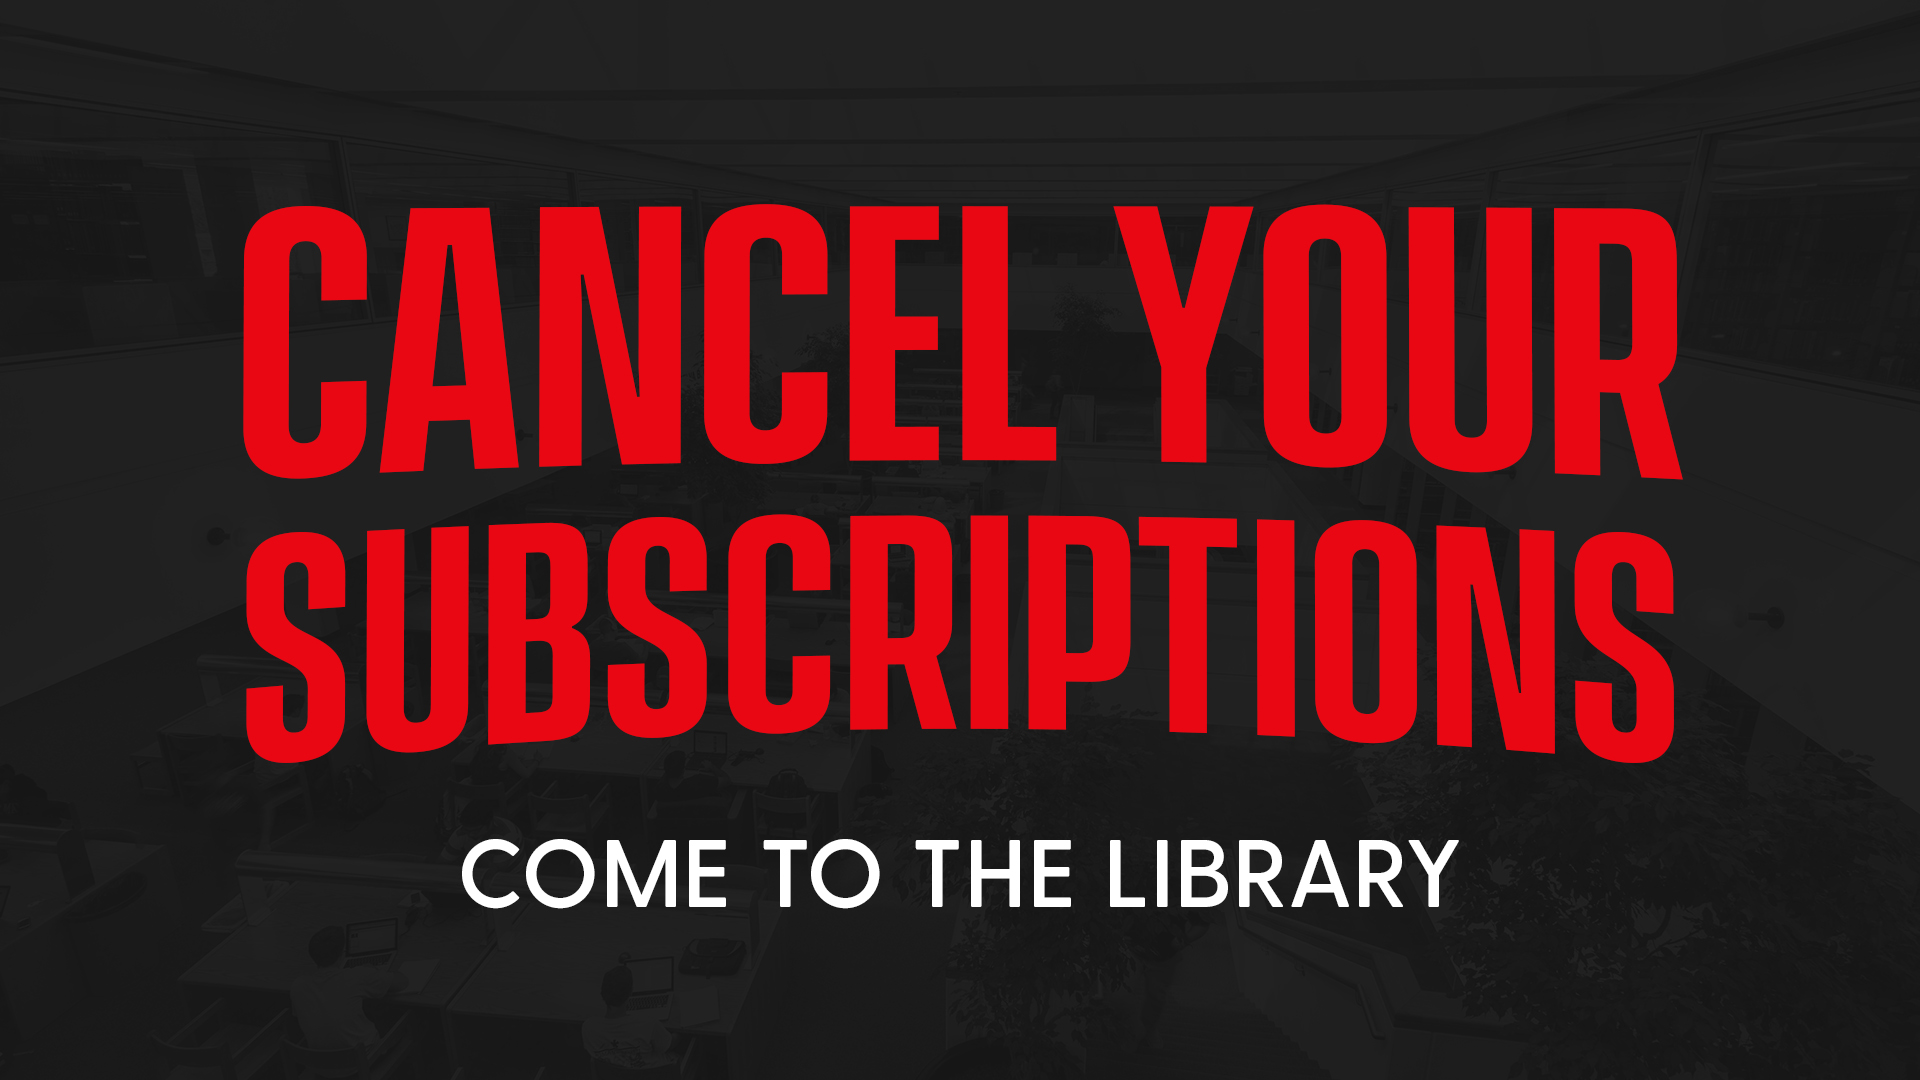 Cancel Your Subscriptions, Come to the Library